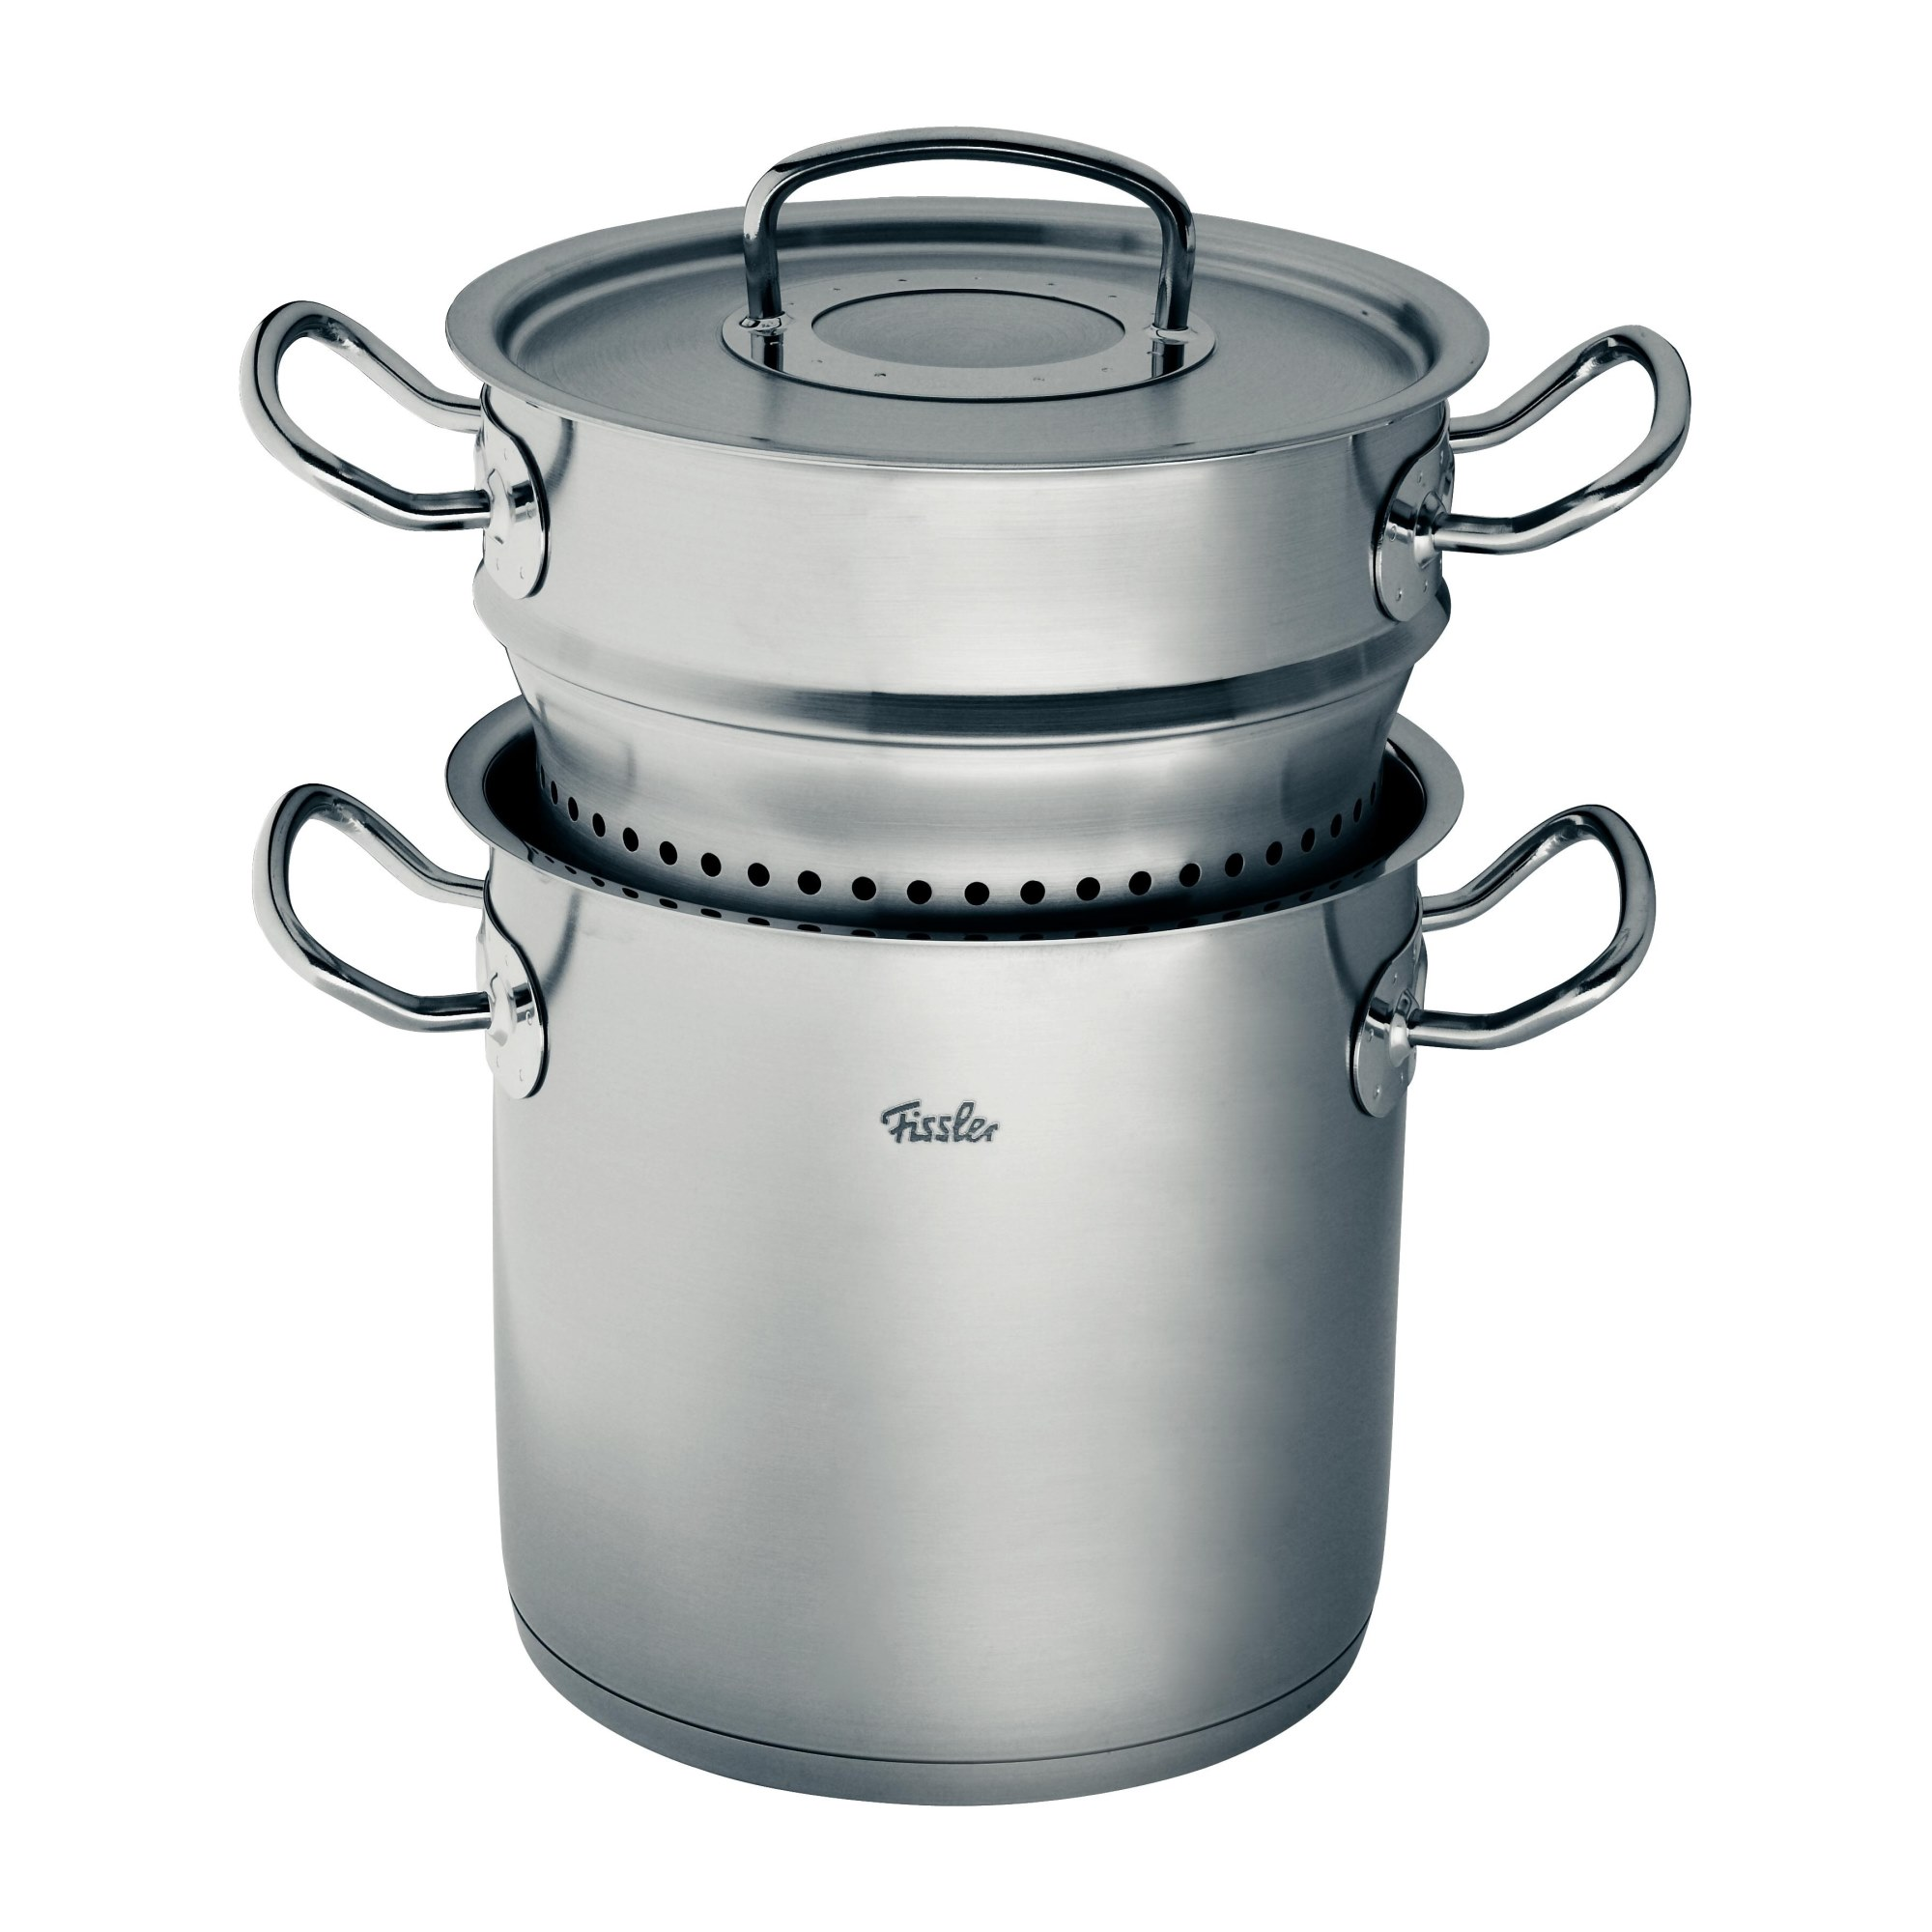 Fissler Original Profi Collection Pasta Pot 20 Cm 6 Litres Cooking Pots Cooking Cooking Baking 1a Neuware Englisch